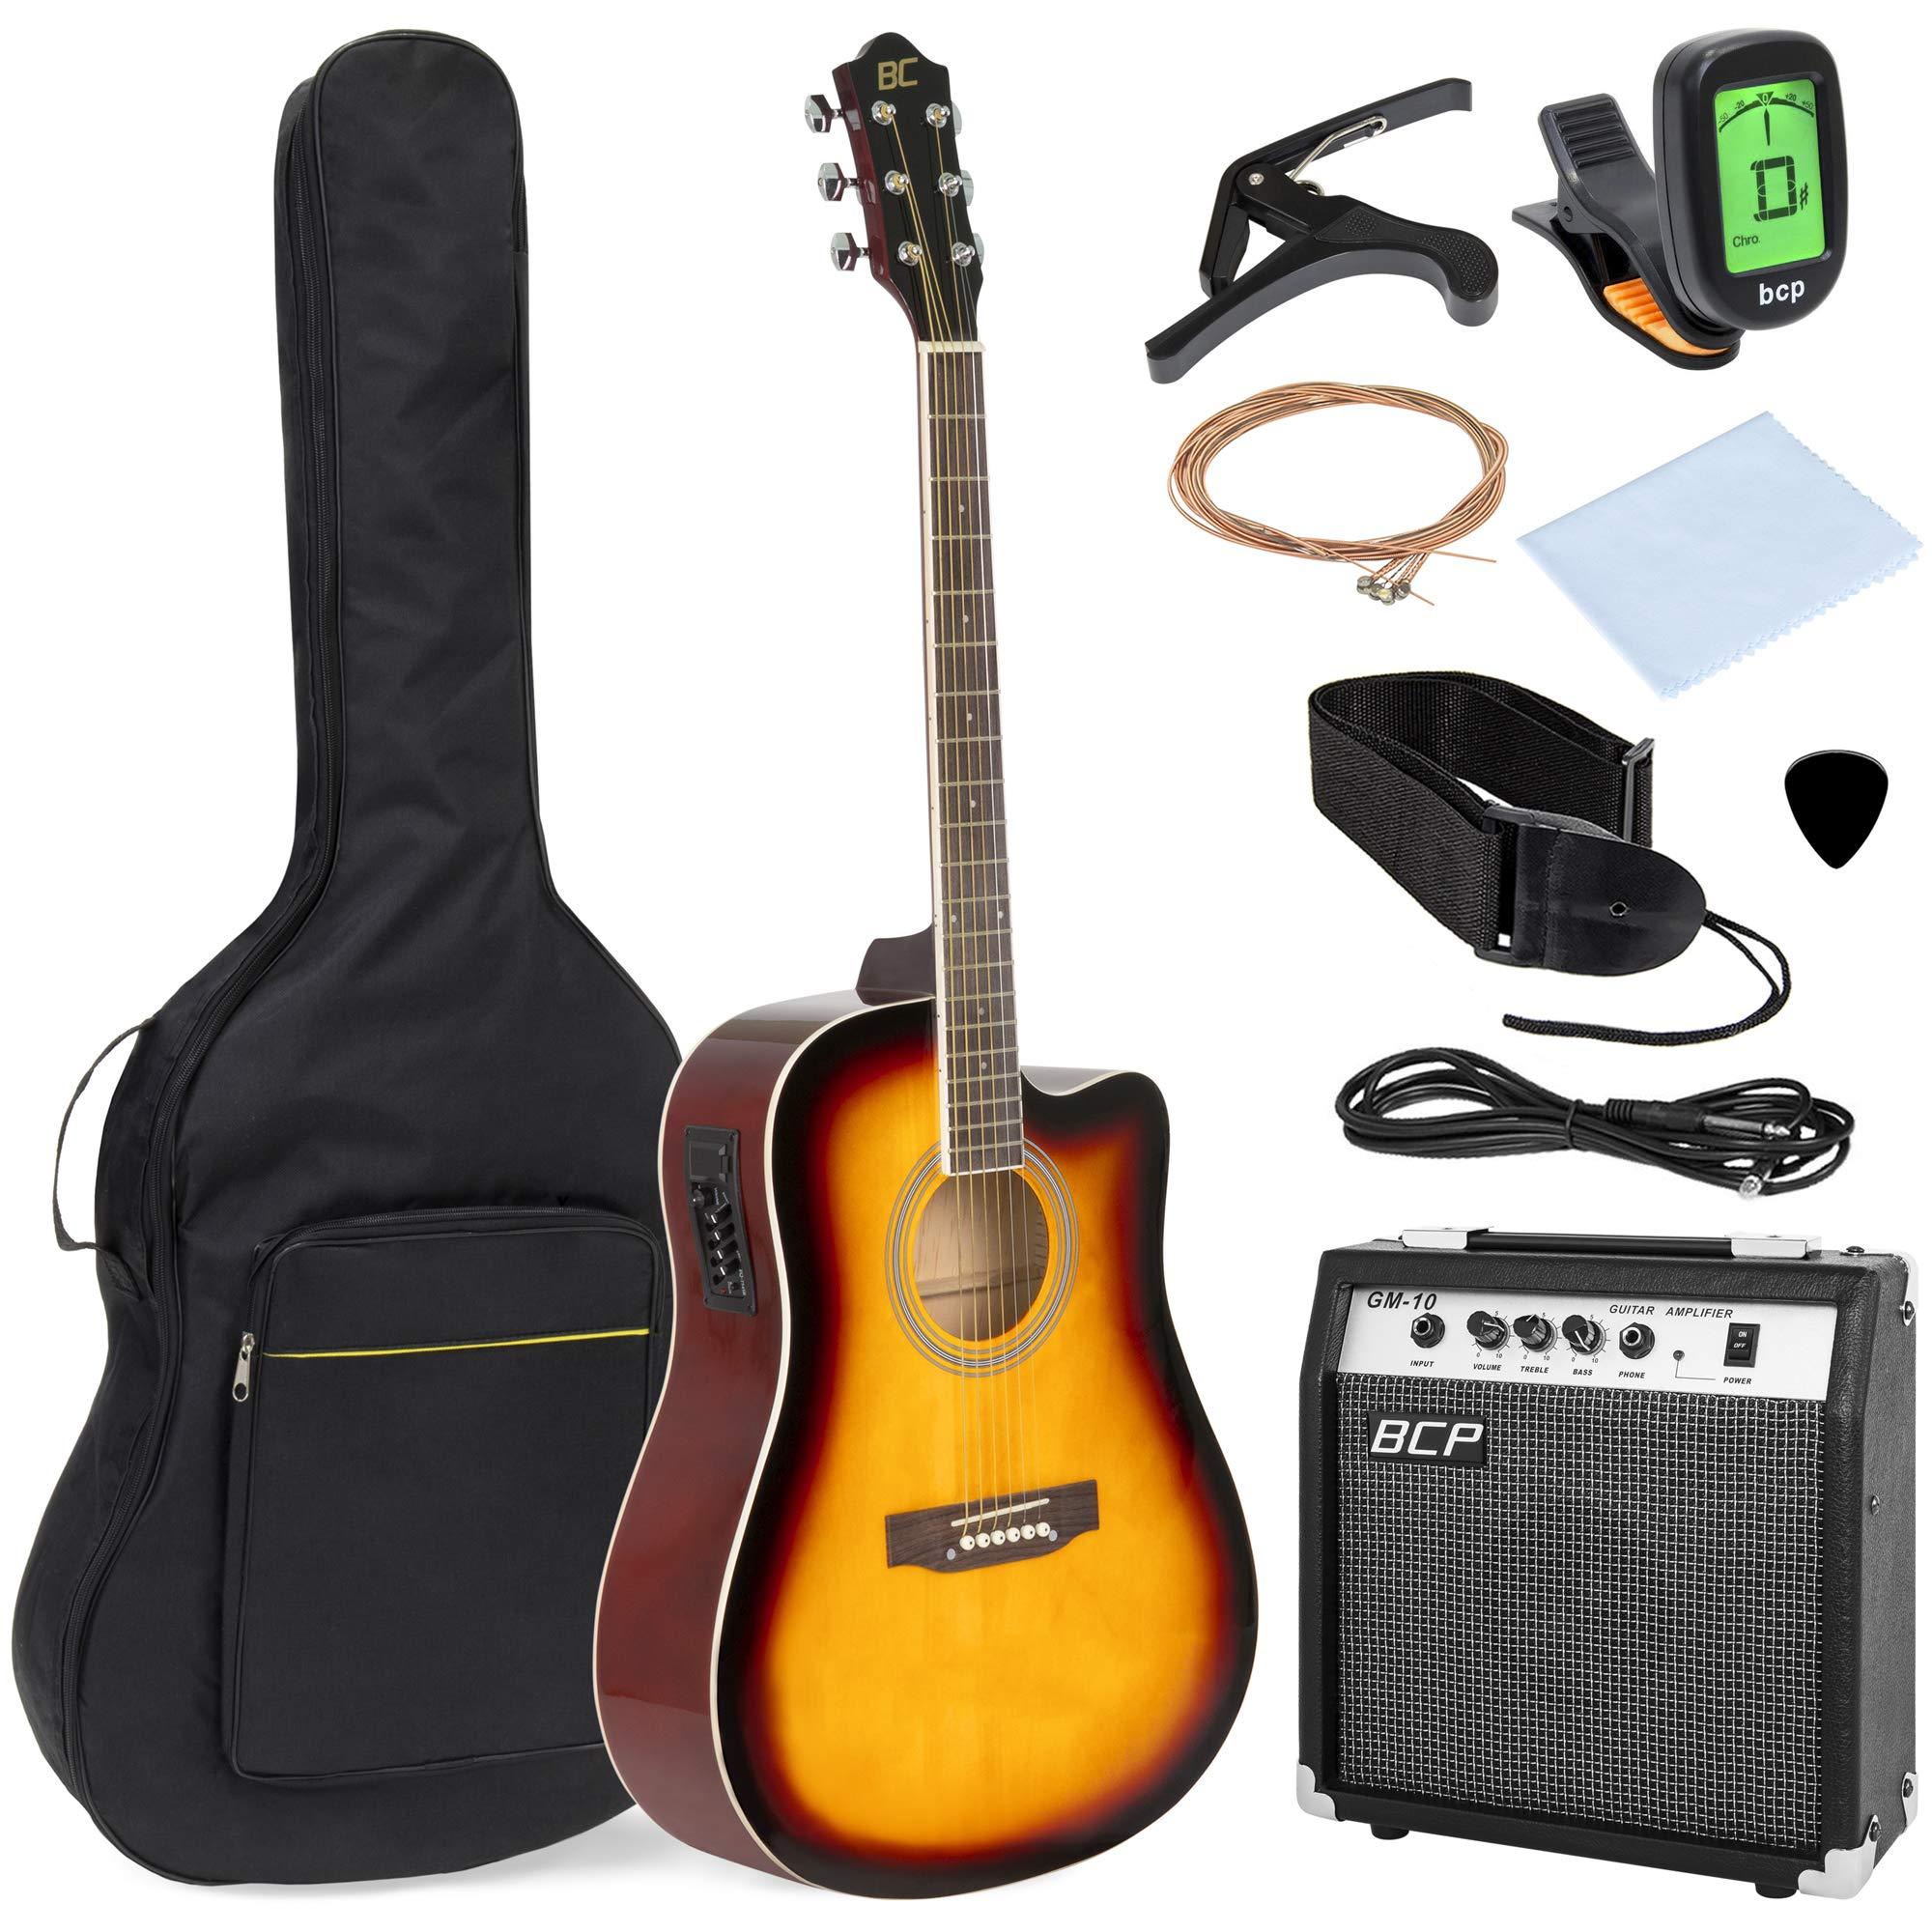 Best Choice Products 41in Full Size All-Wood Acoustic Electric Cutaway Guitar Musical Instrument Set w/ 10-Watt Amplifier, Capo, E-Tuner, Gig Bag, Strap, Picks, Extra Strings, Cloth - Sunburst by Best Choice Products (Image #1)